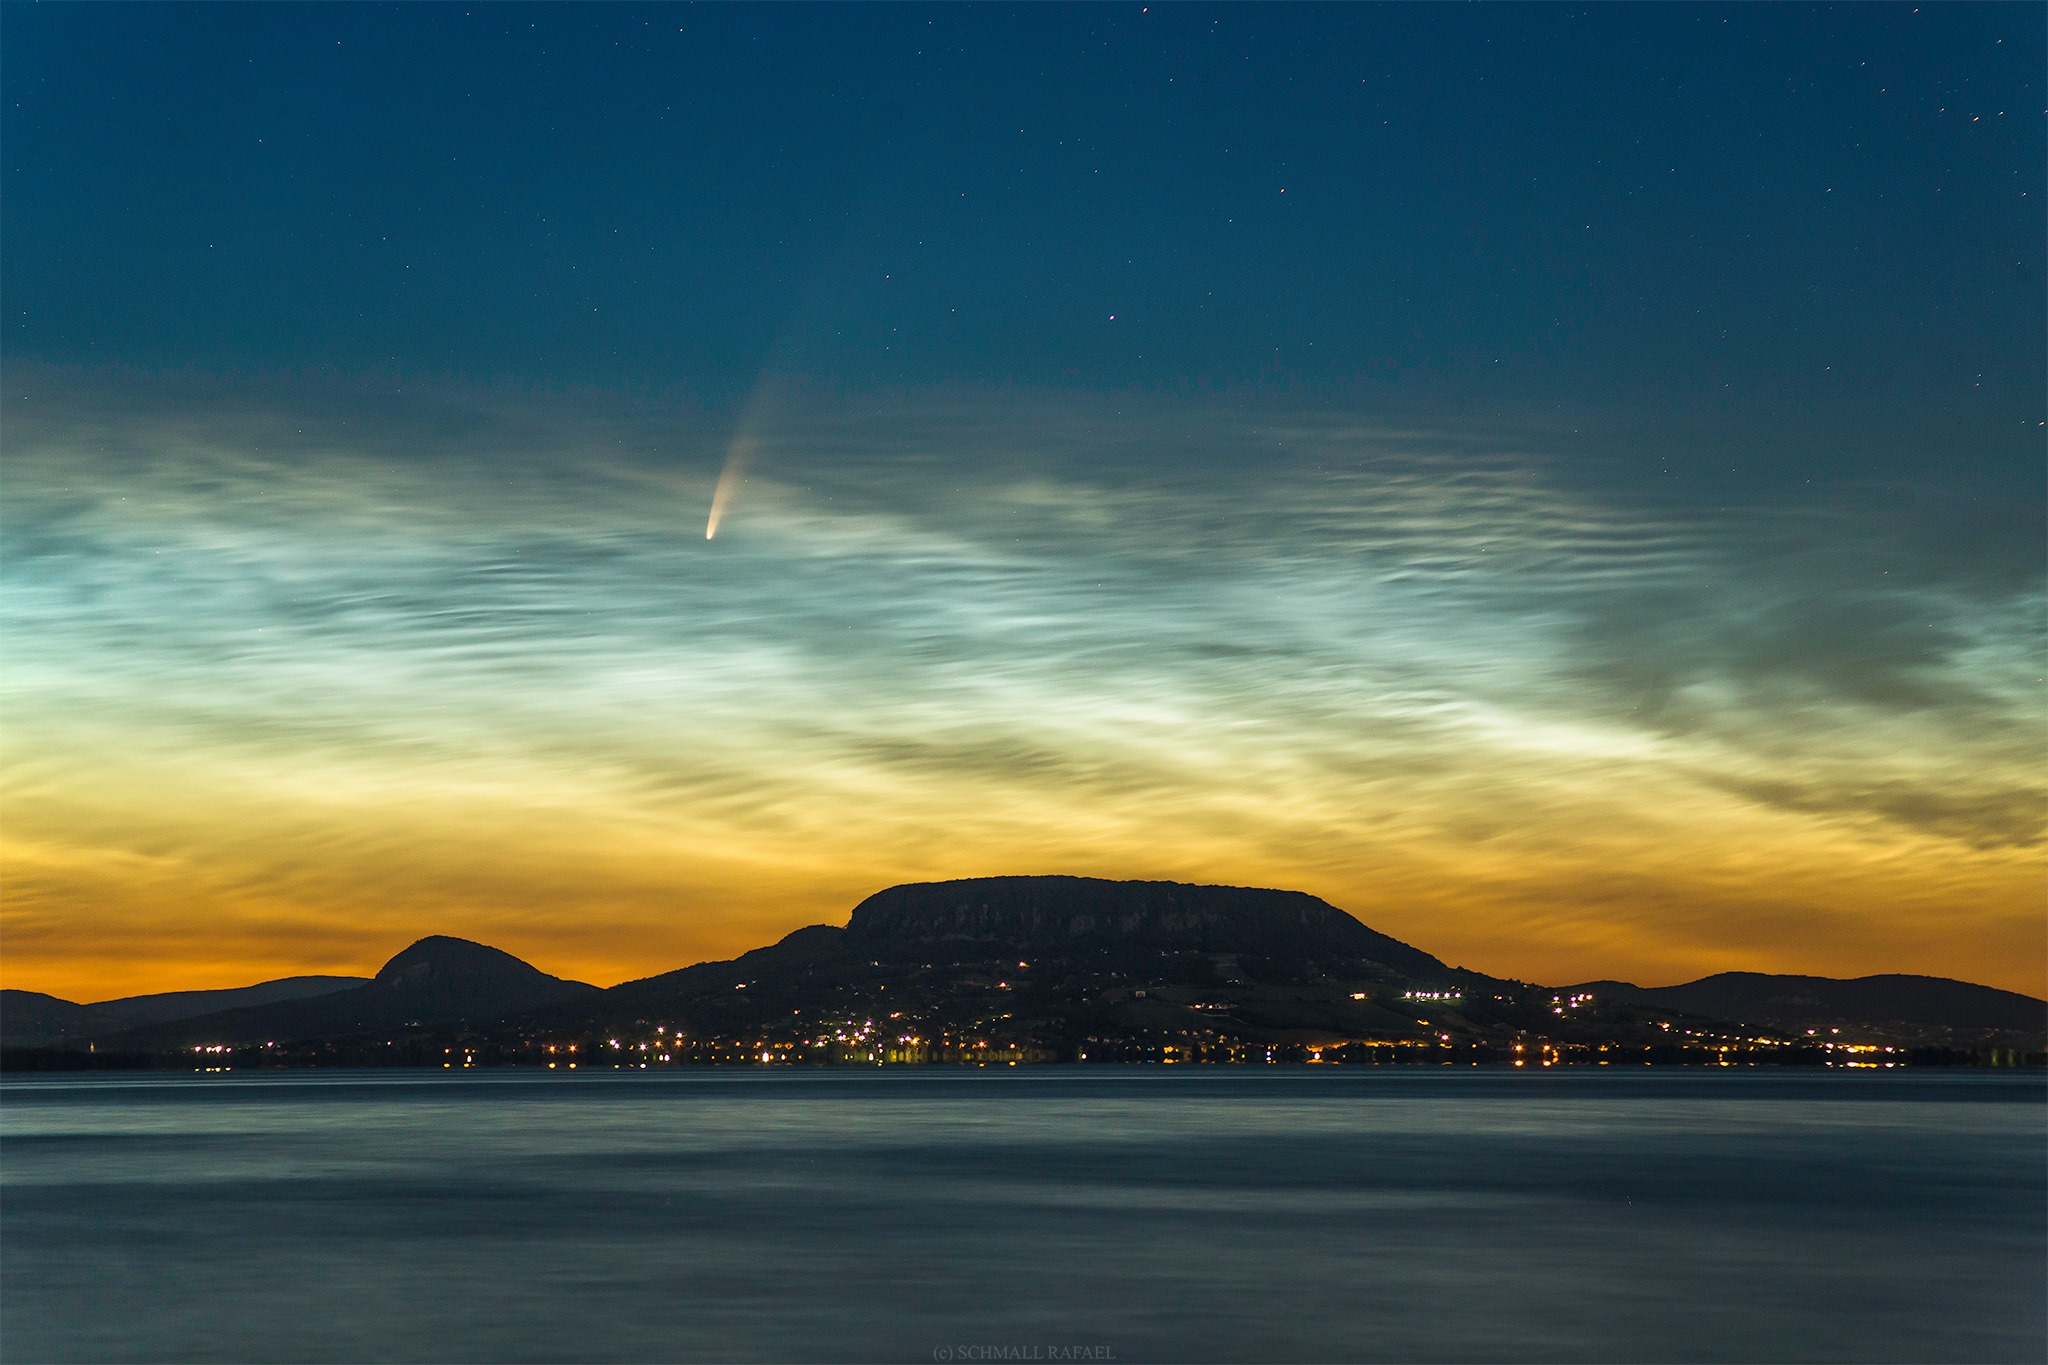 NEOWISE comet behind noctilucent clouds over Lake Balaton, Hungary